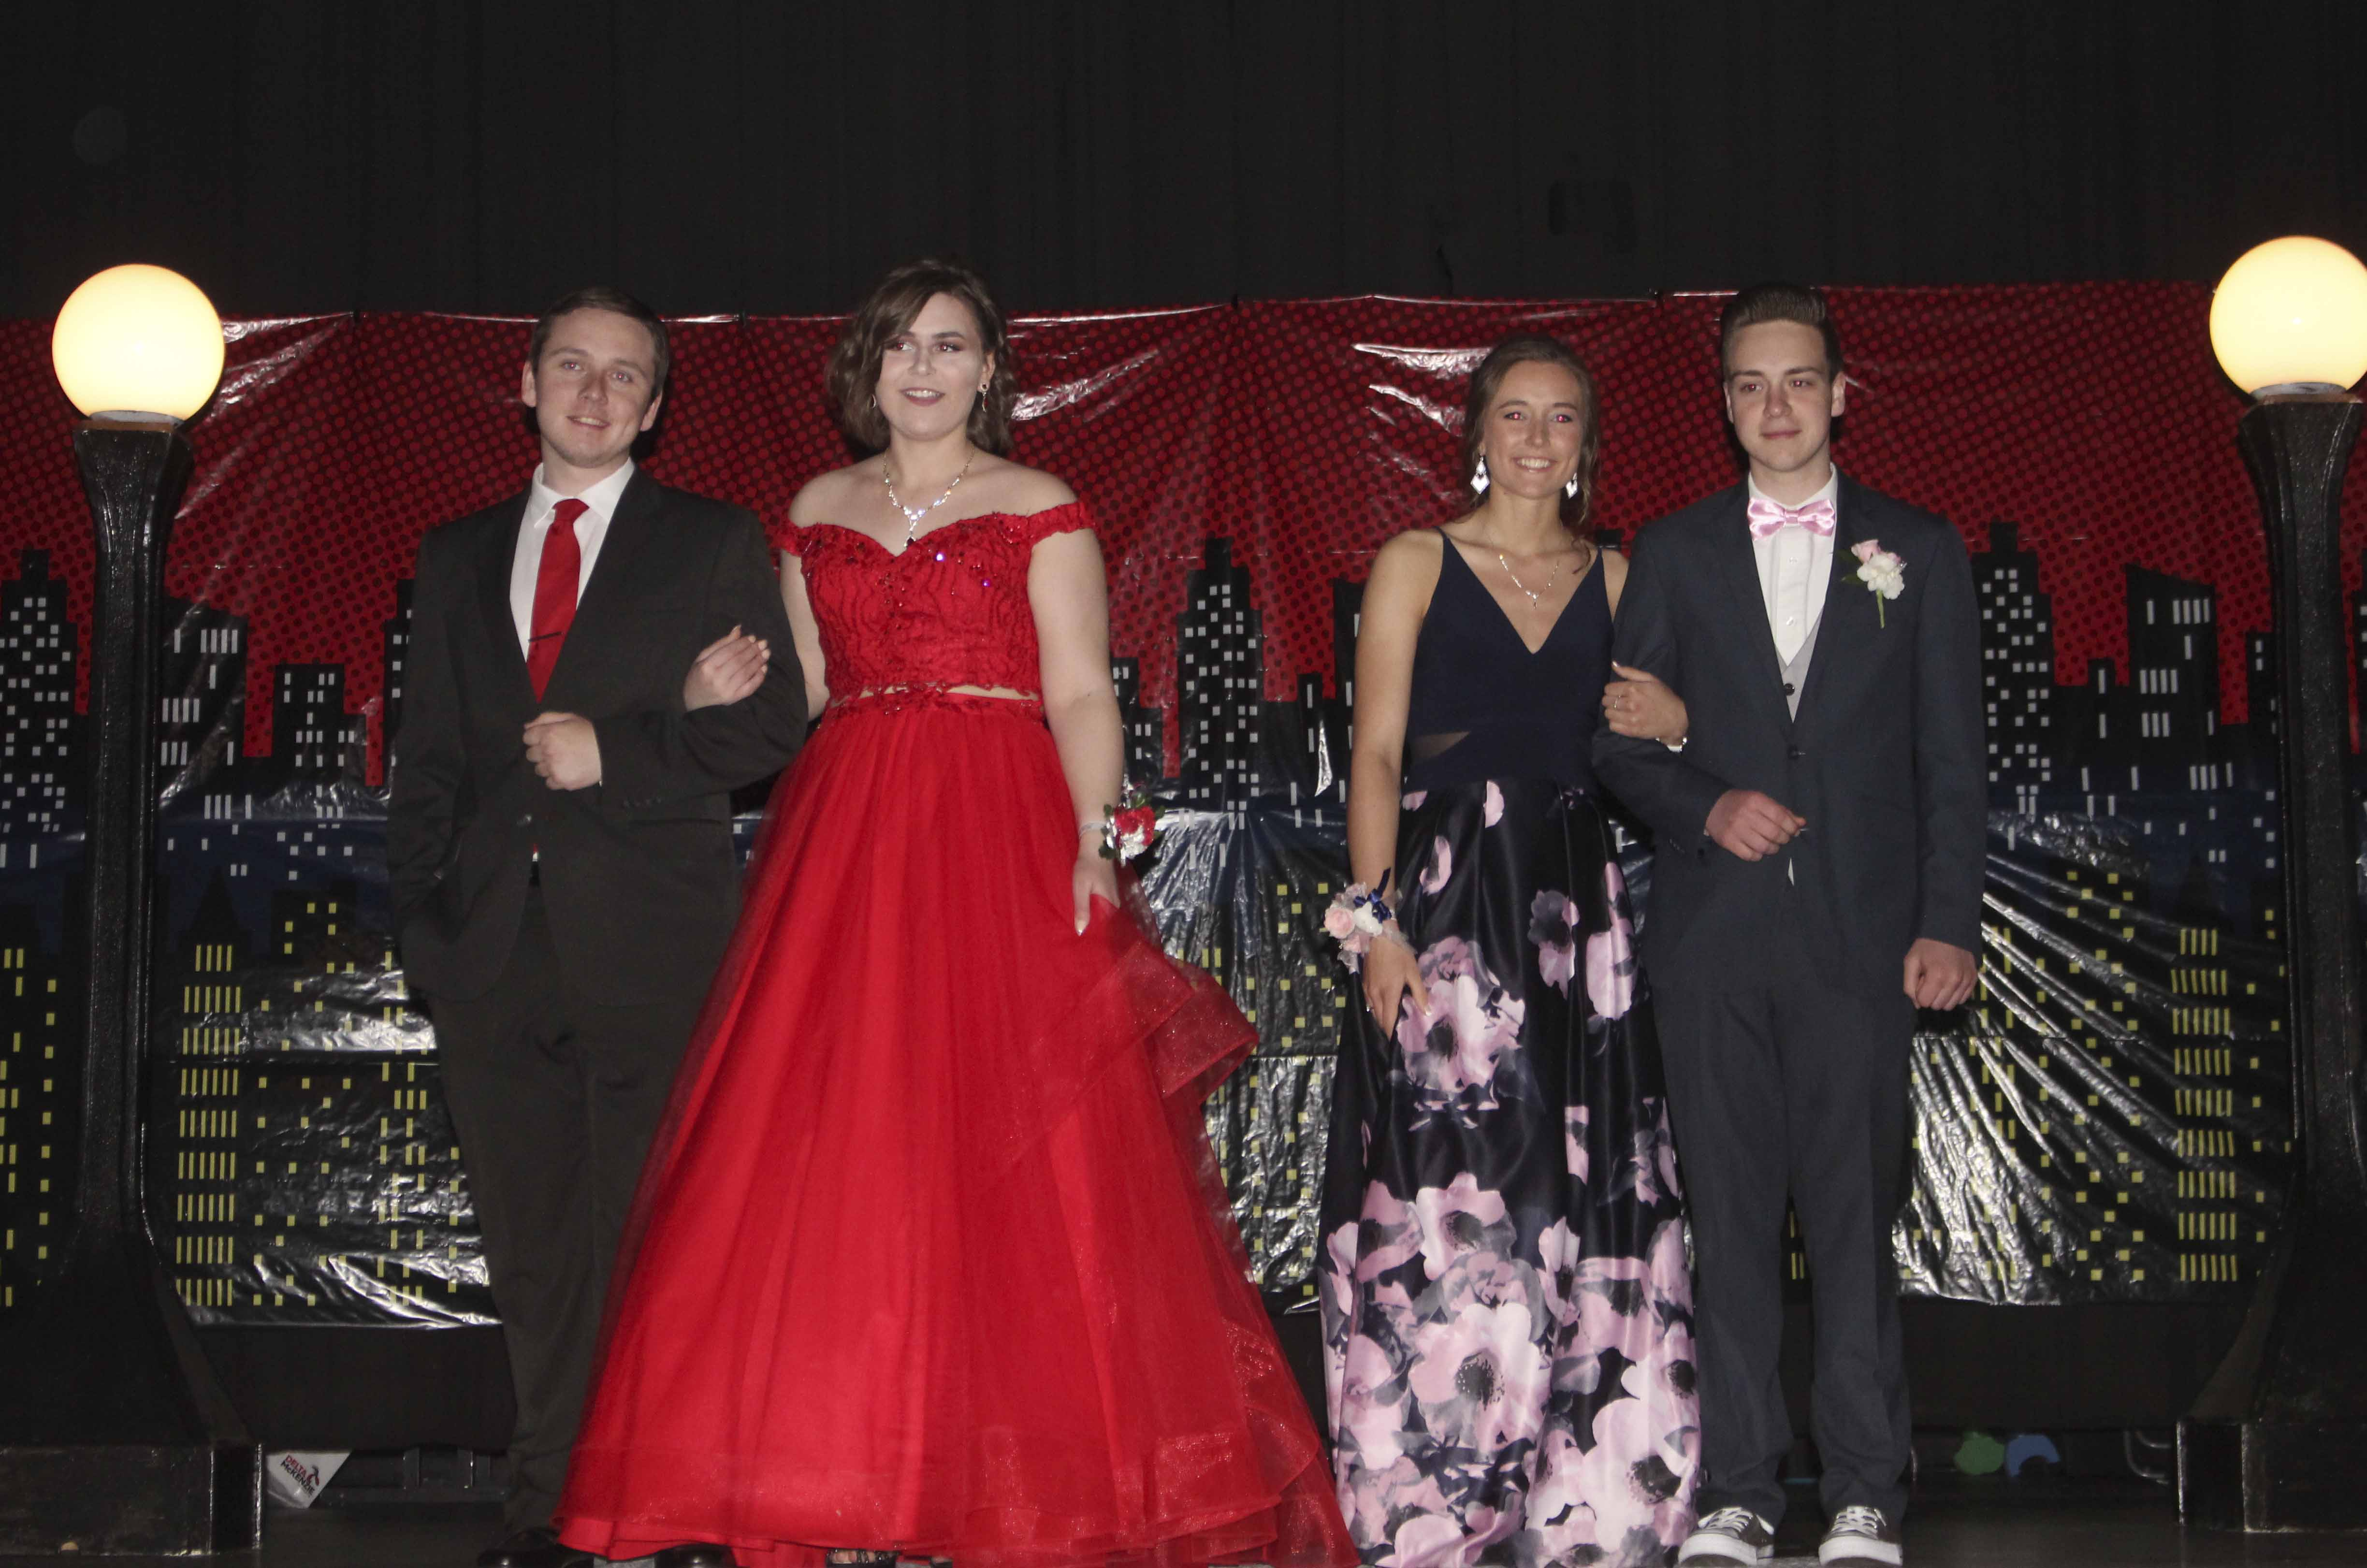 Enjoying their moment on stage are (from left) Quinn Fiedler, Cassie Gillmore, Jordyn Patterson and Nate Hawkins.